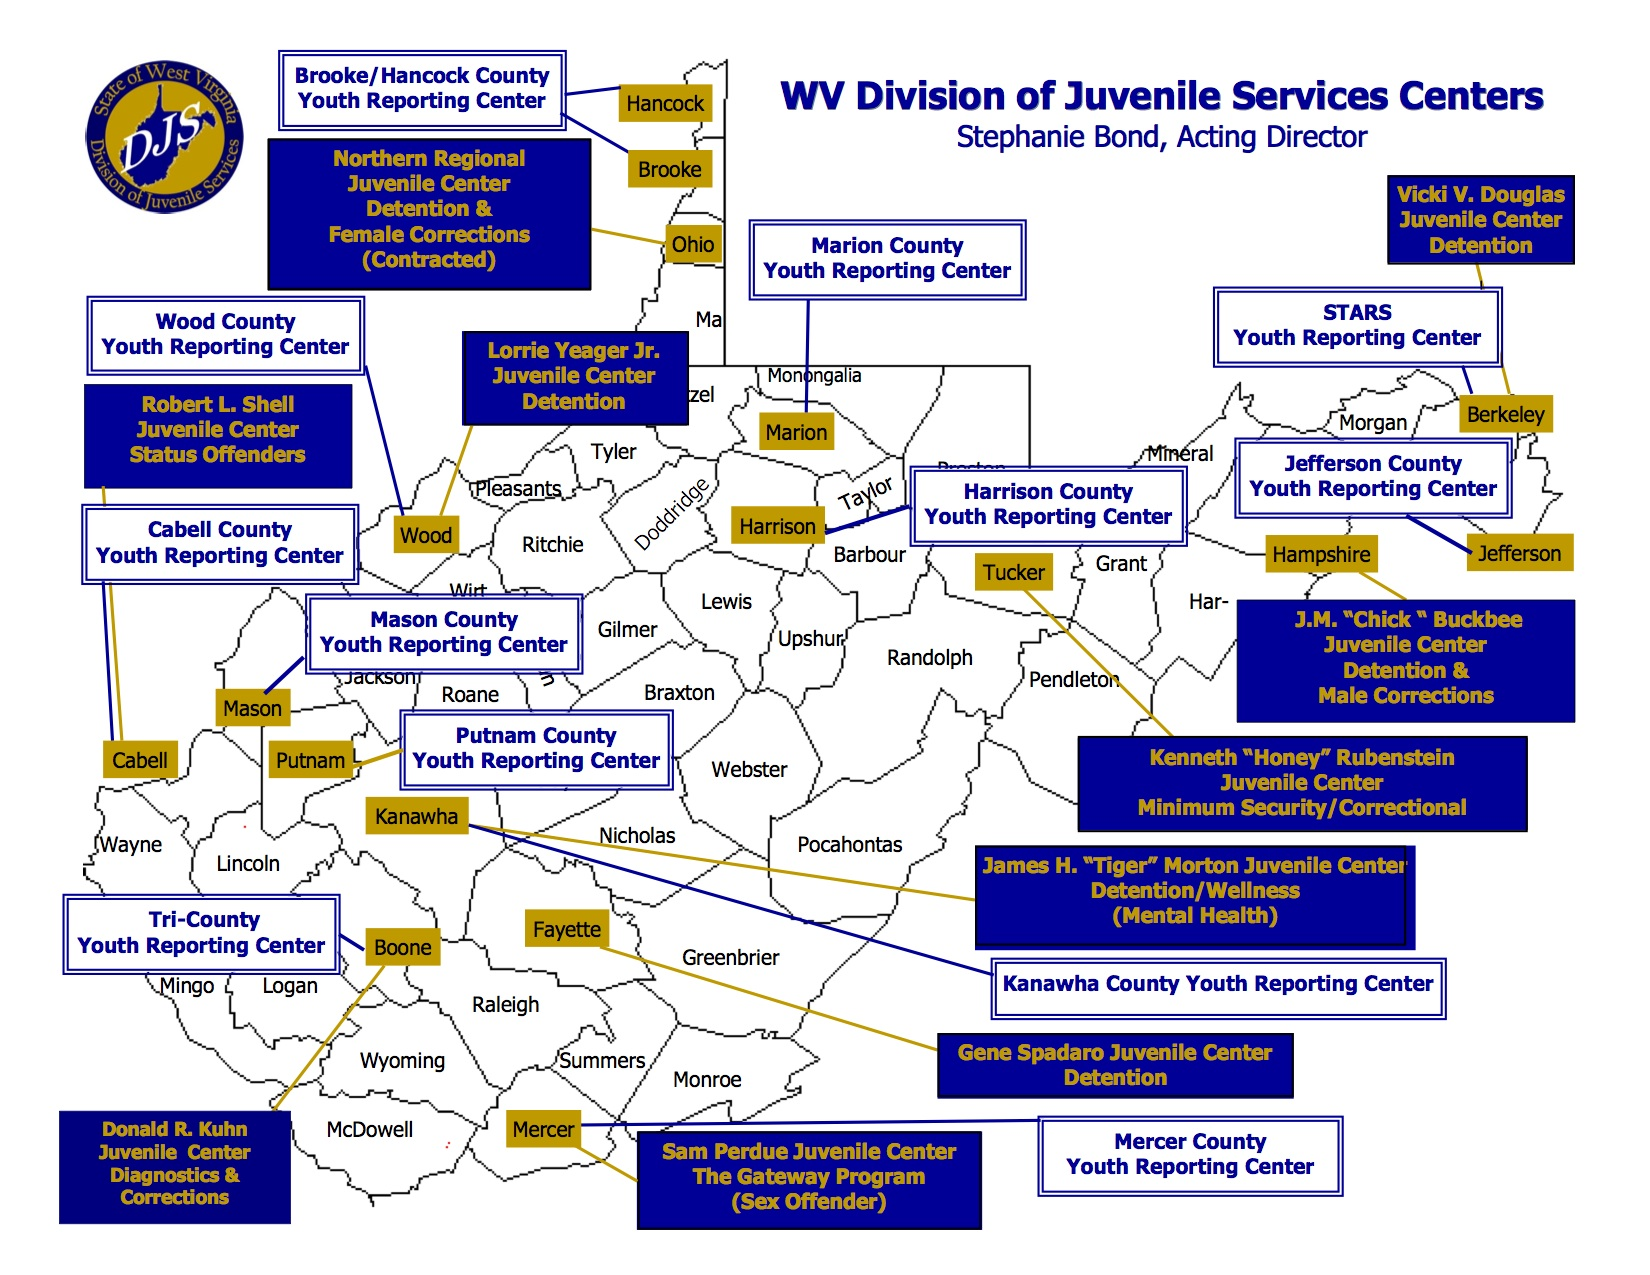 Division of Juvenile Services